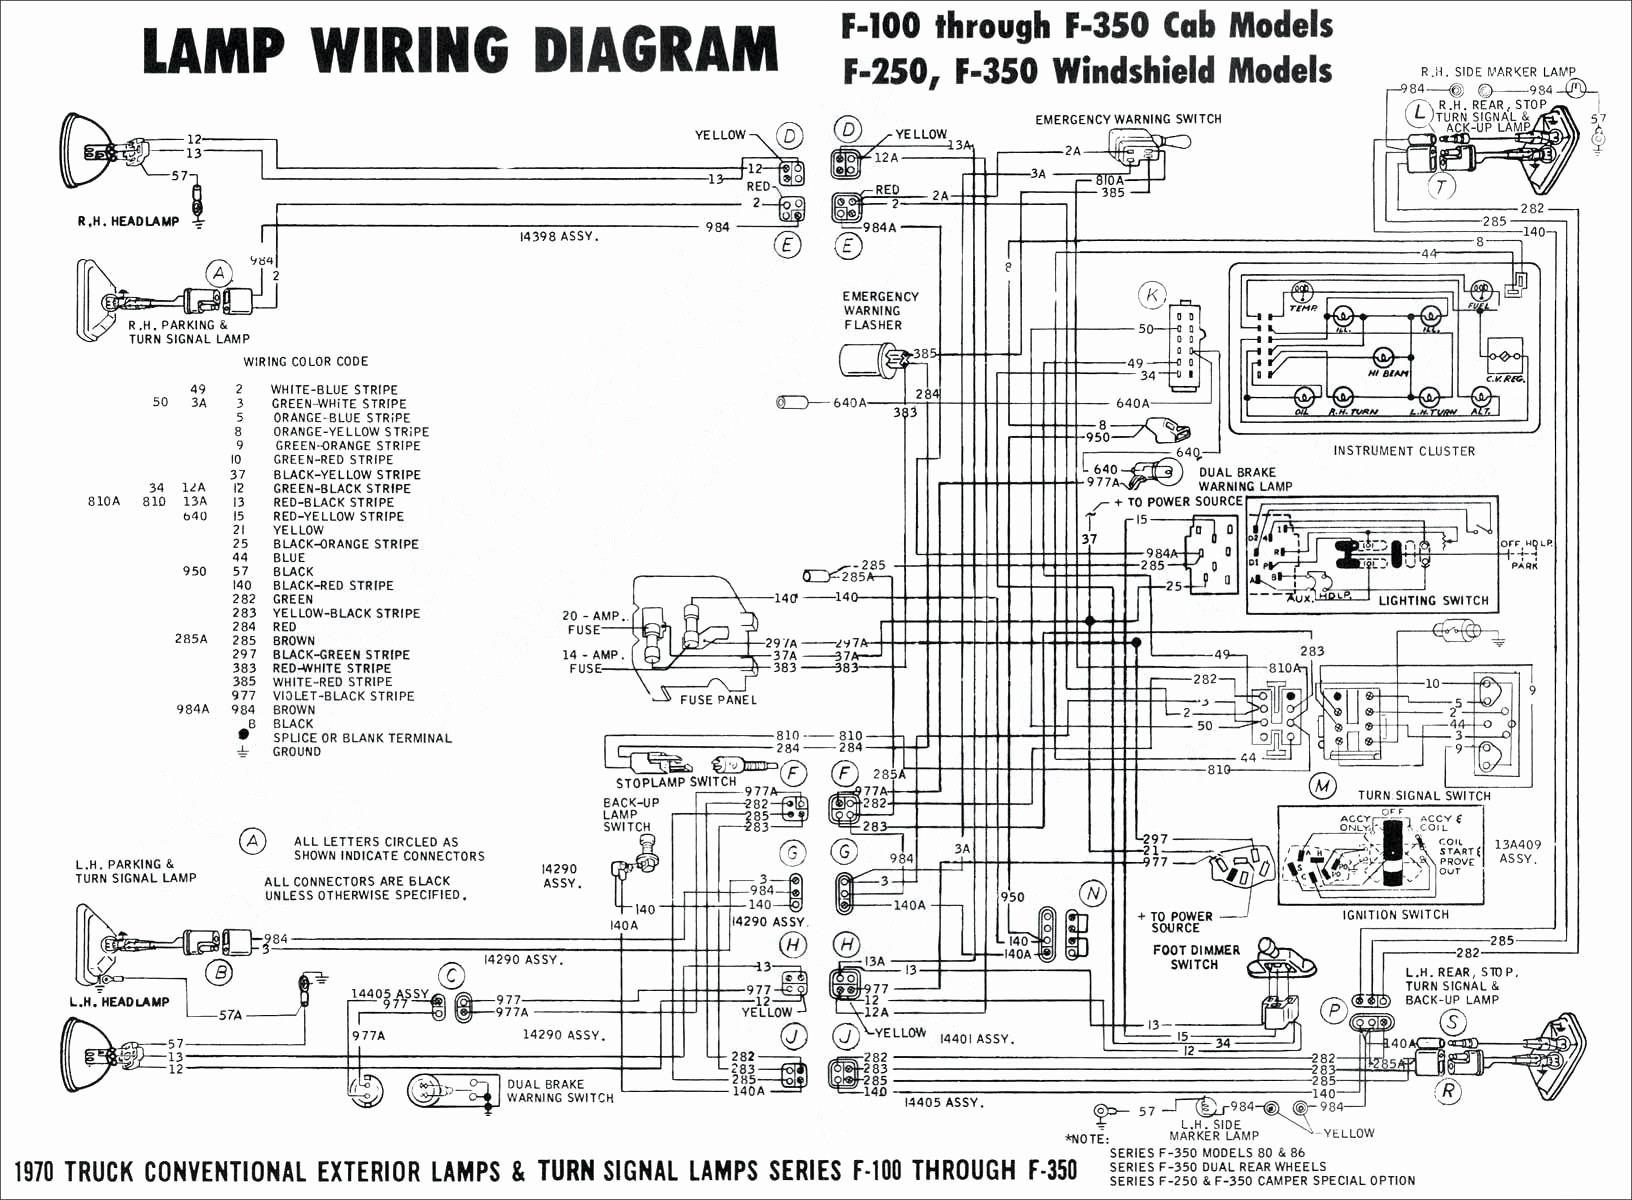 Tail Light Wiring Diagram 1995 Chevy Truck Fresh 1984 Ford Diagrams Manual